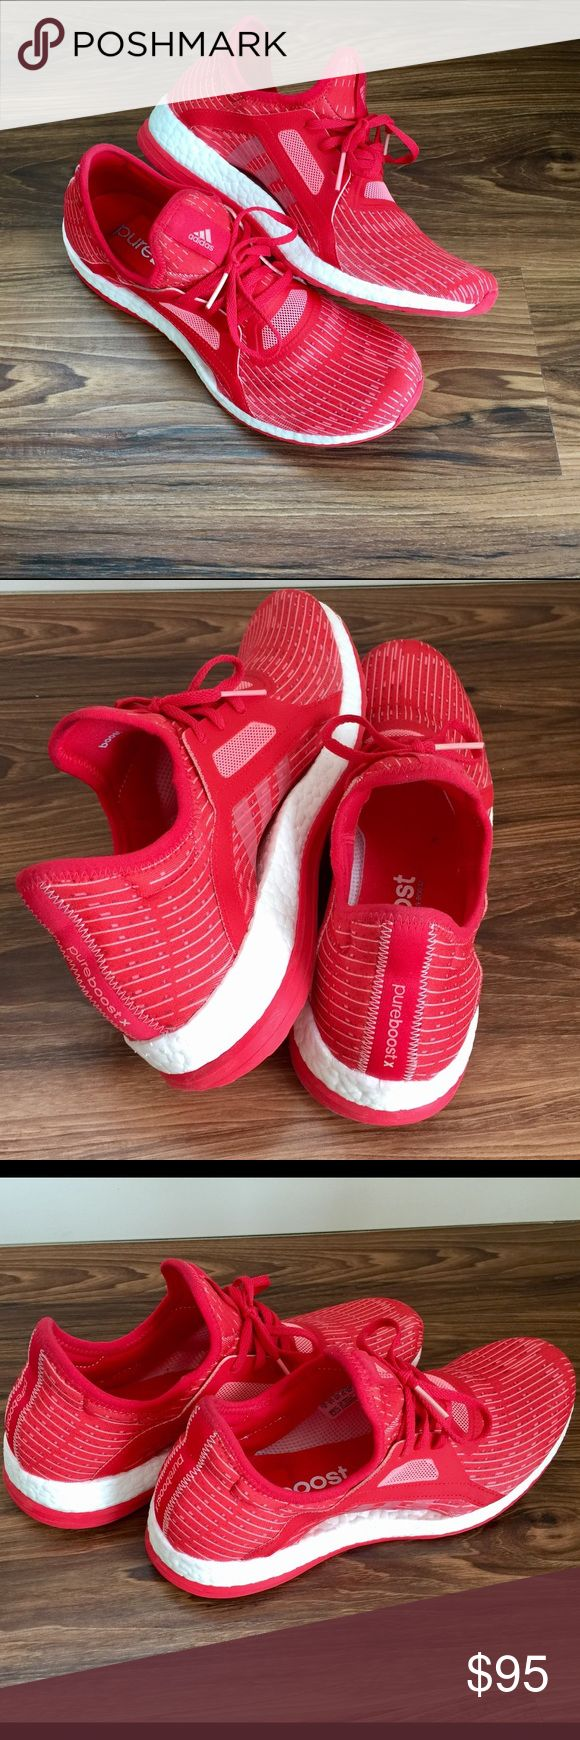 SOLD Adidas Pure Boost shoes Adidas Pure Boost shoes, size US 10. Women's. Only been worn once, super comfortable light and airy shoes. No box. Adidas Shoes Athletic Shoes